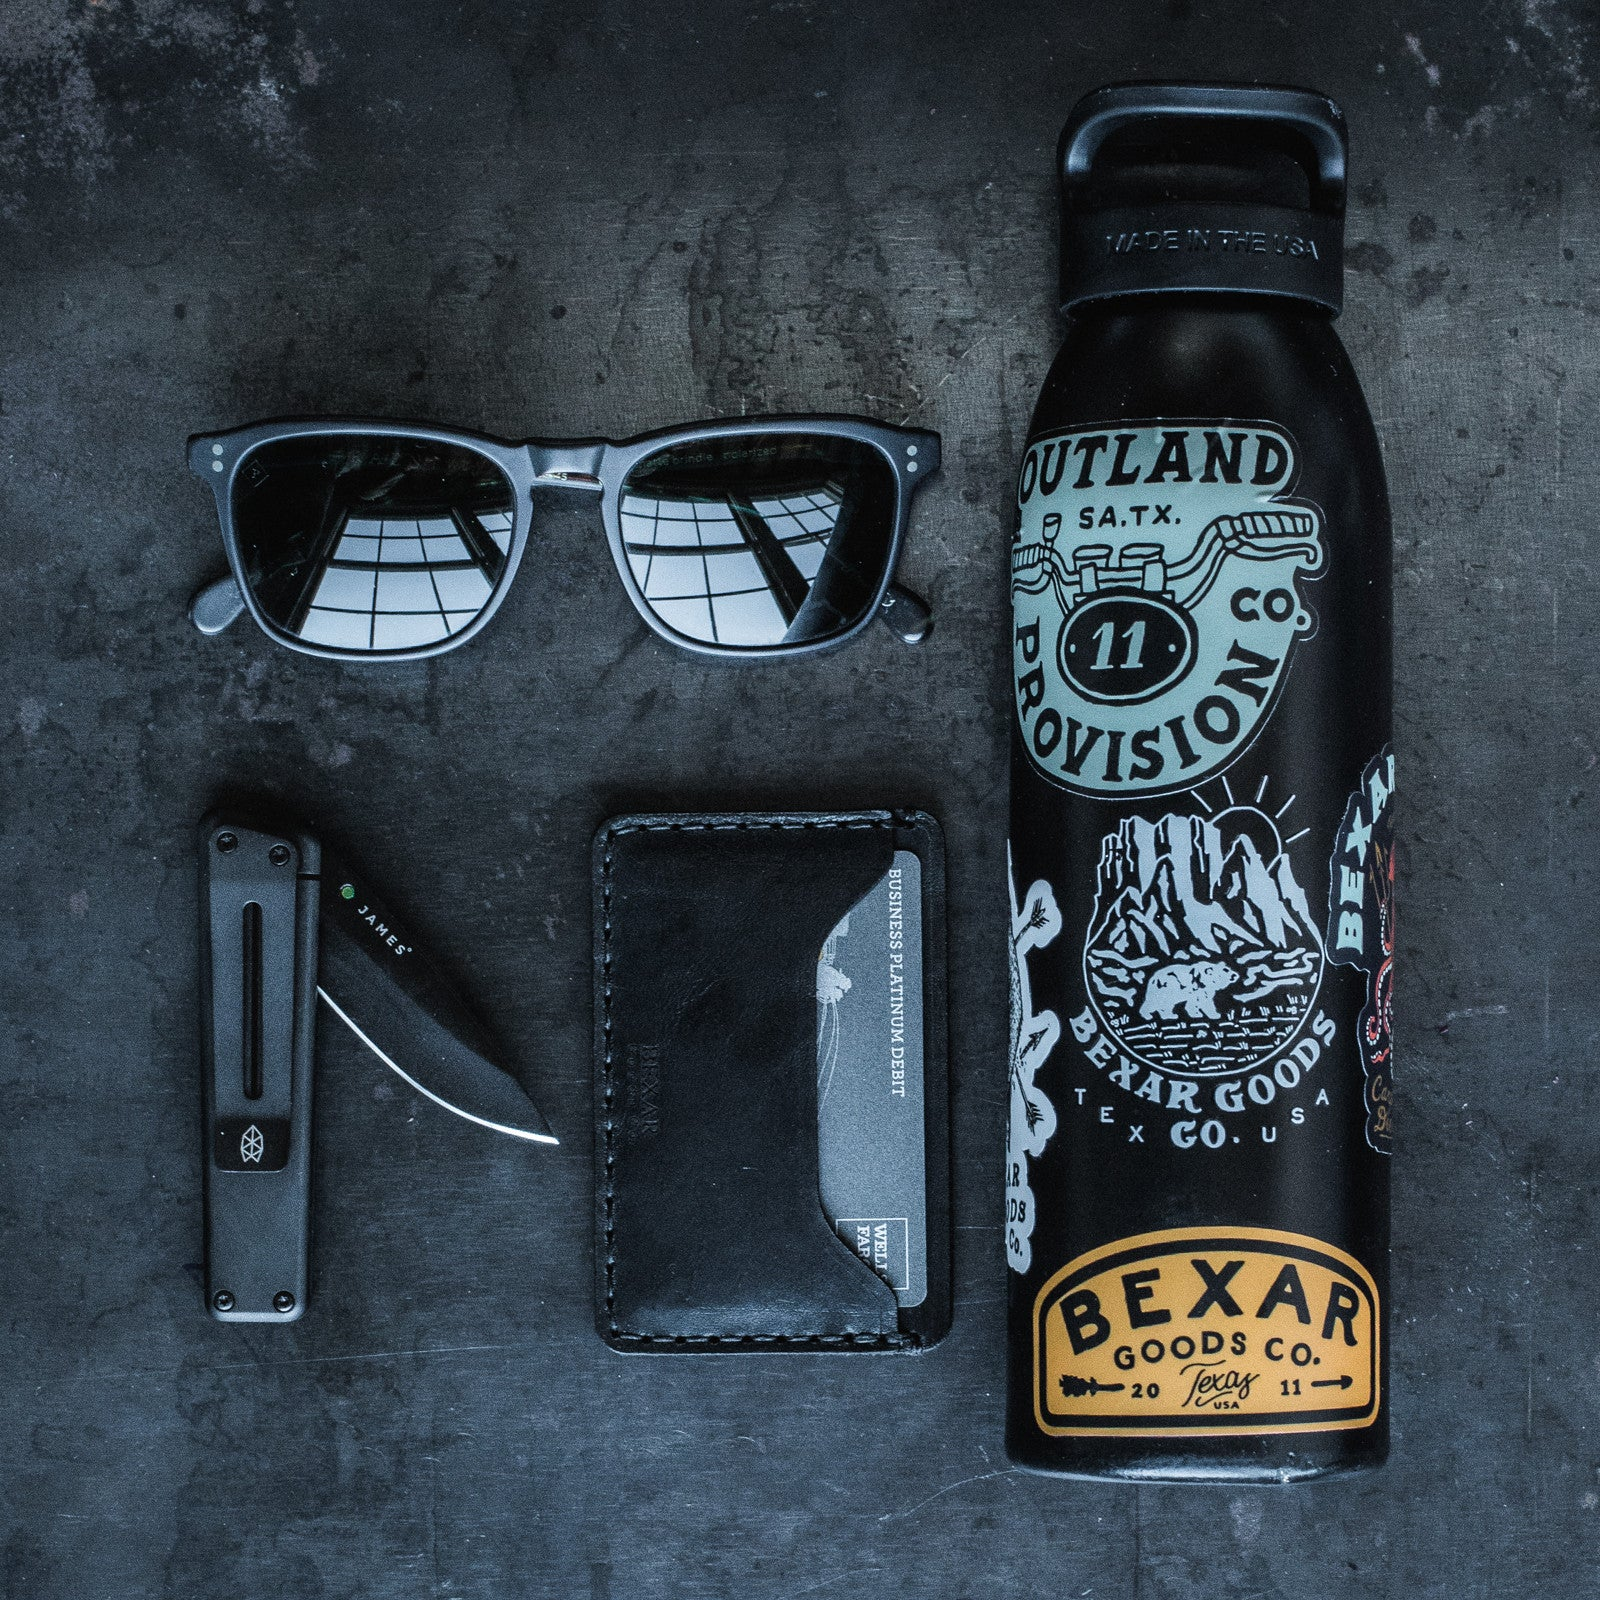 7f4703206f All Products Page 2 - Bexar Goods Co.